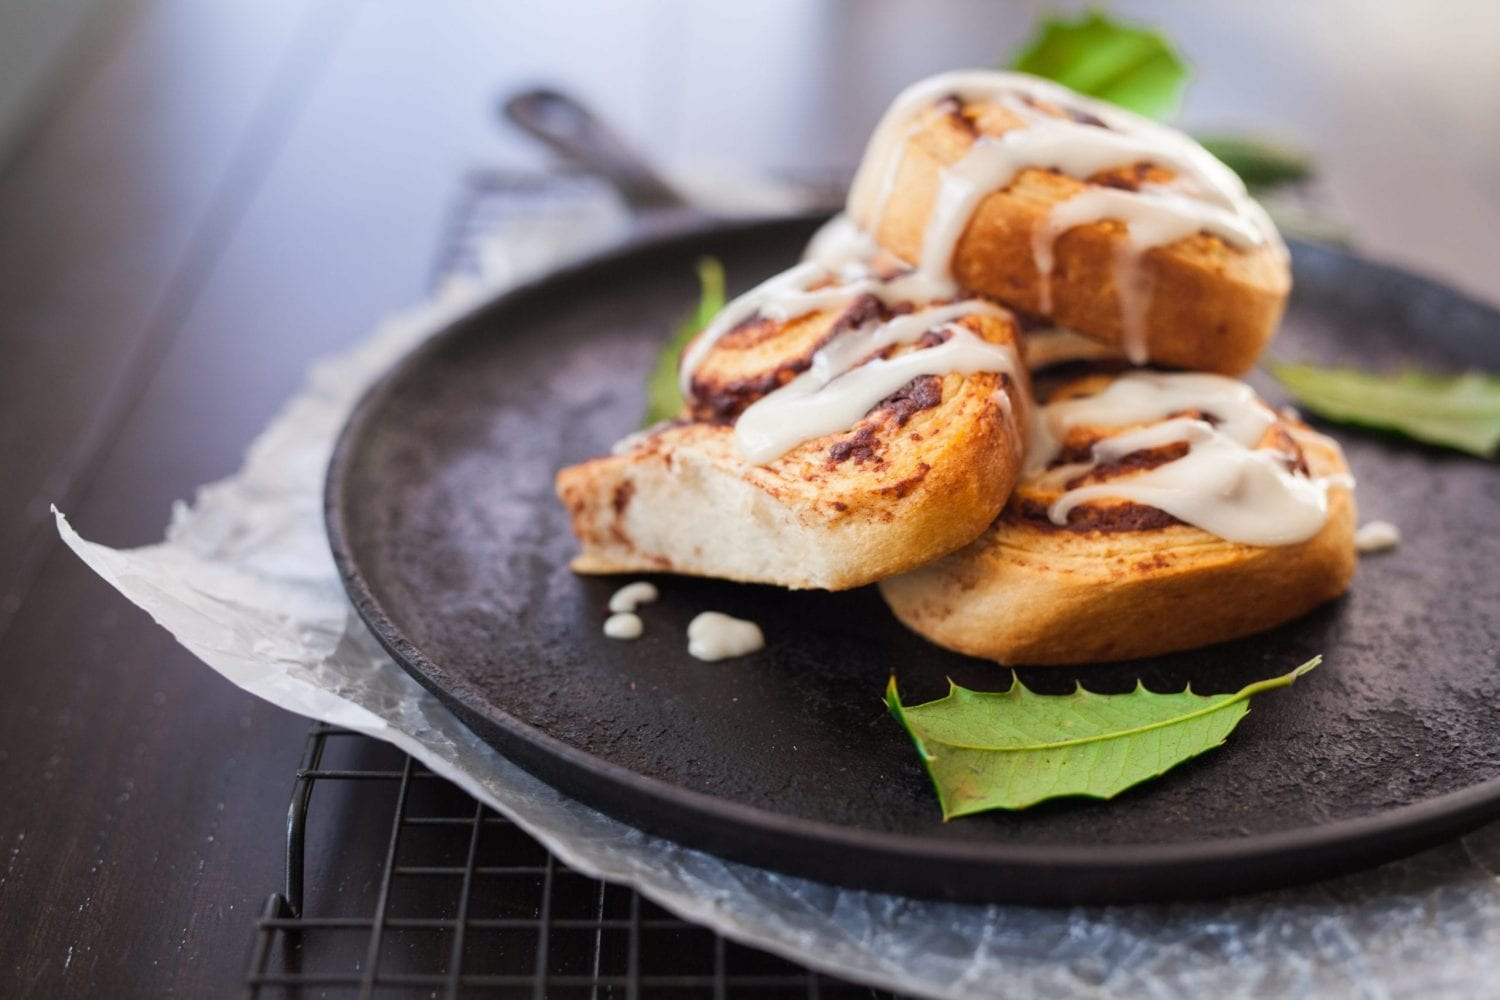 cannabis infused cinnamon rolls on a black plate with leaves beside them.